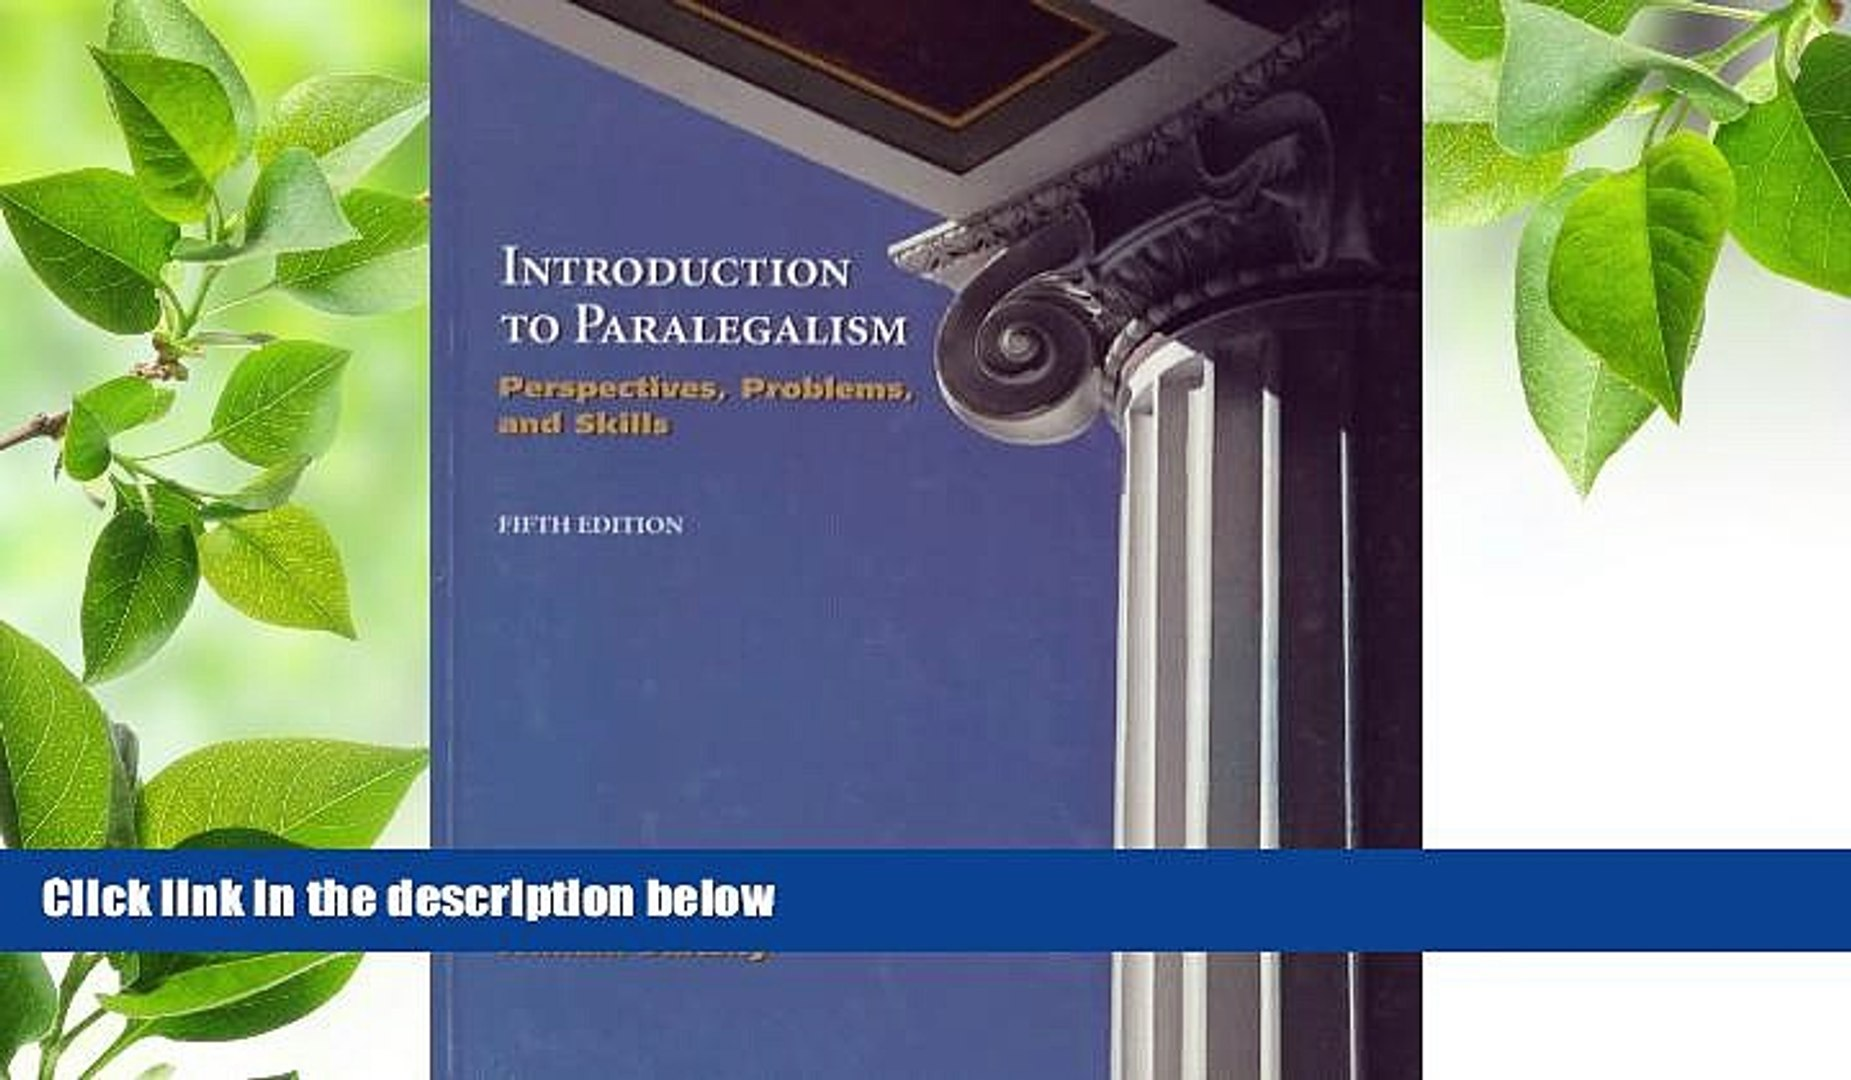 6e Introduction to Paralegalism: Perspectives Problems and Skills